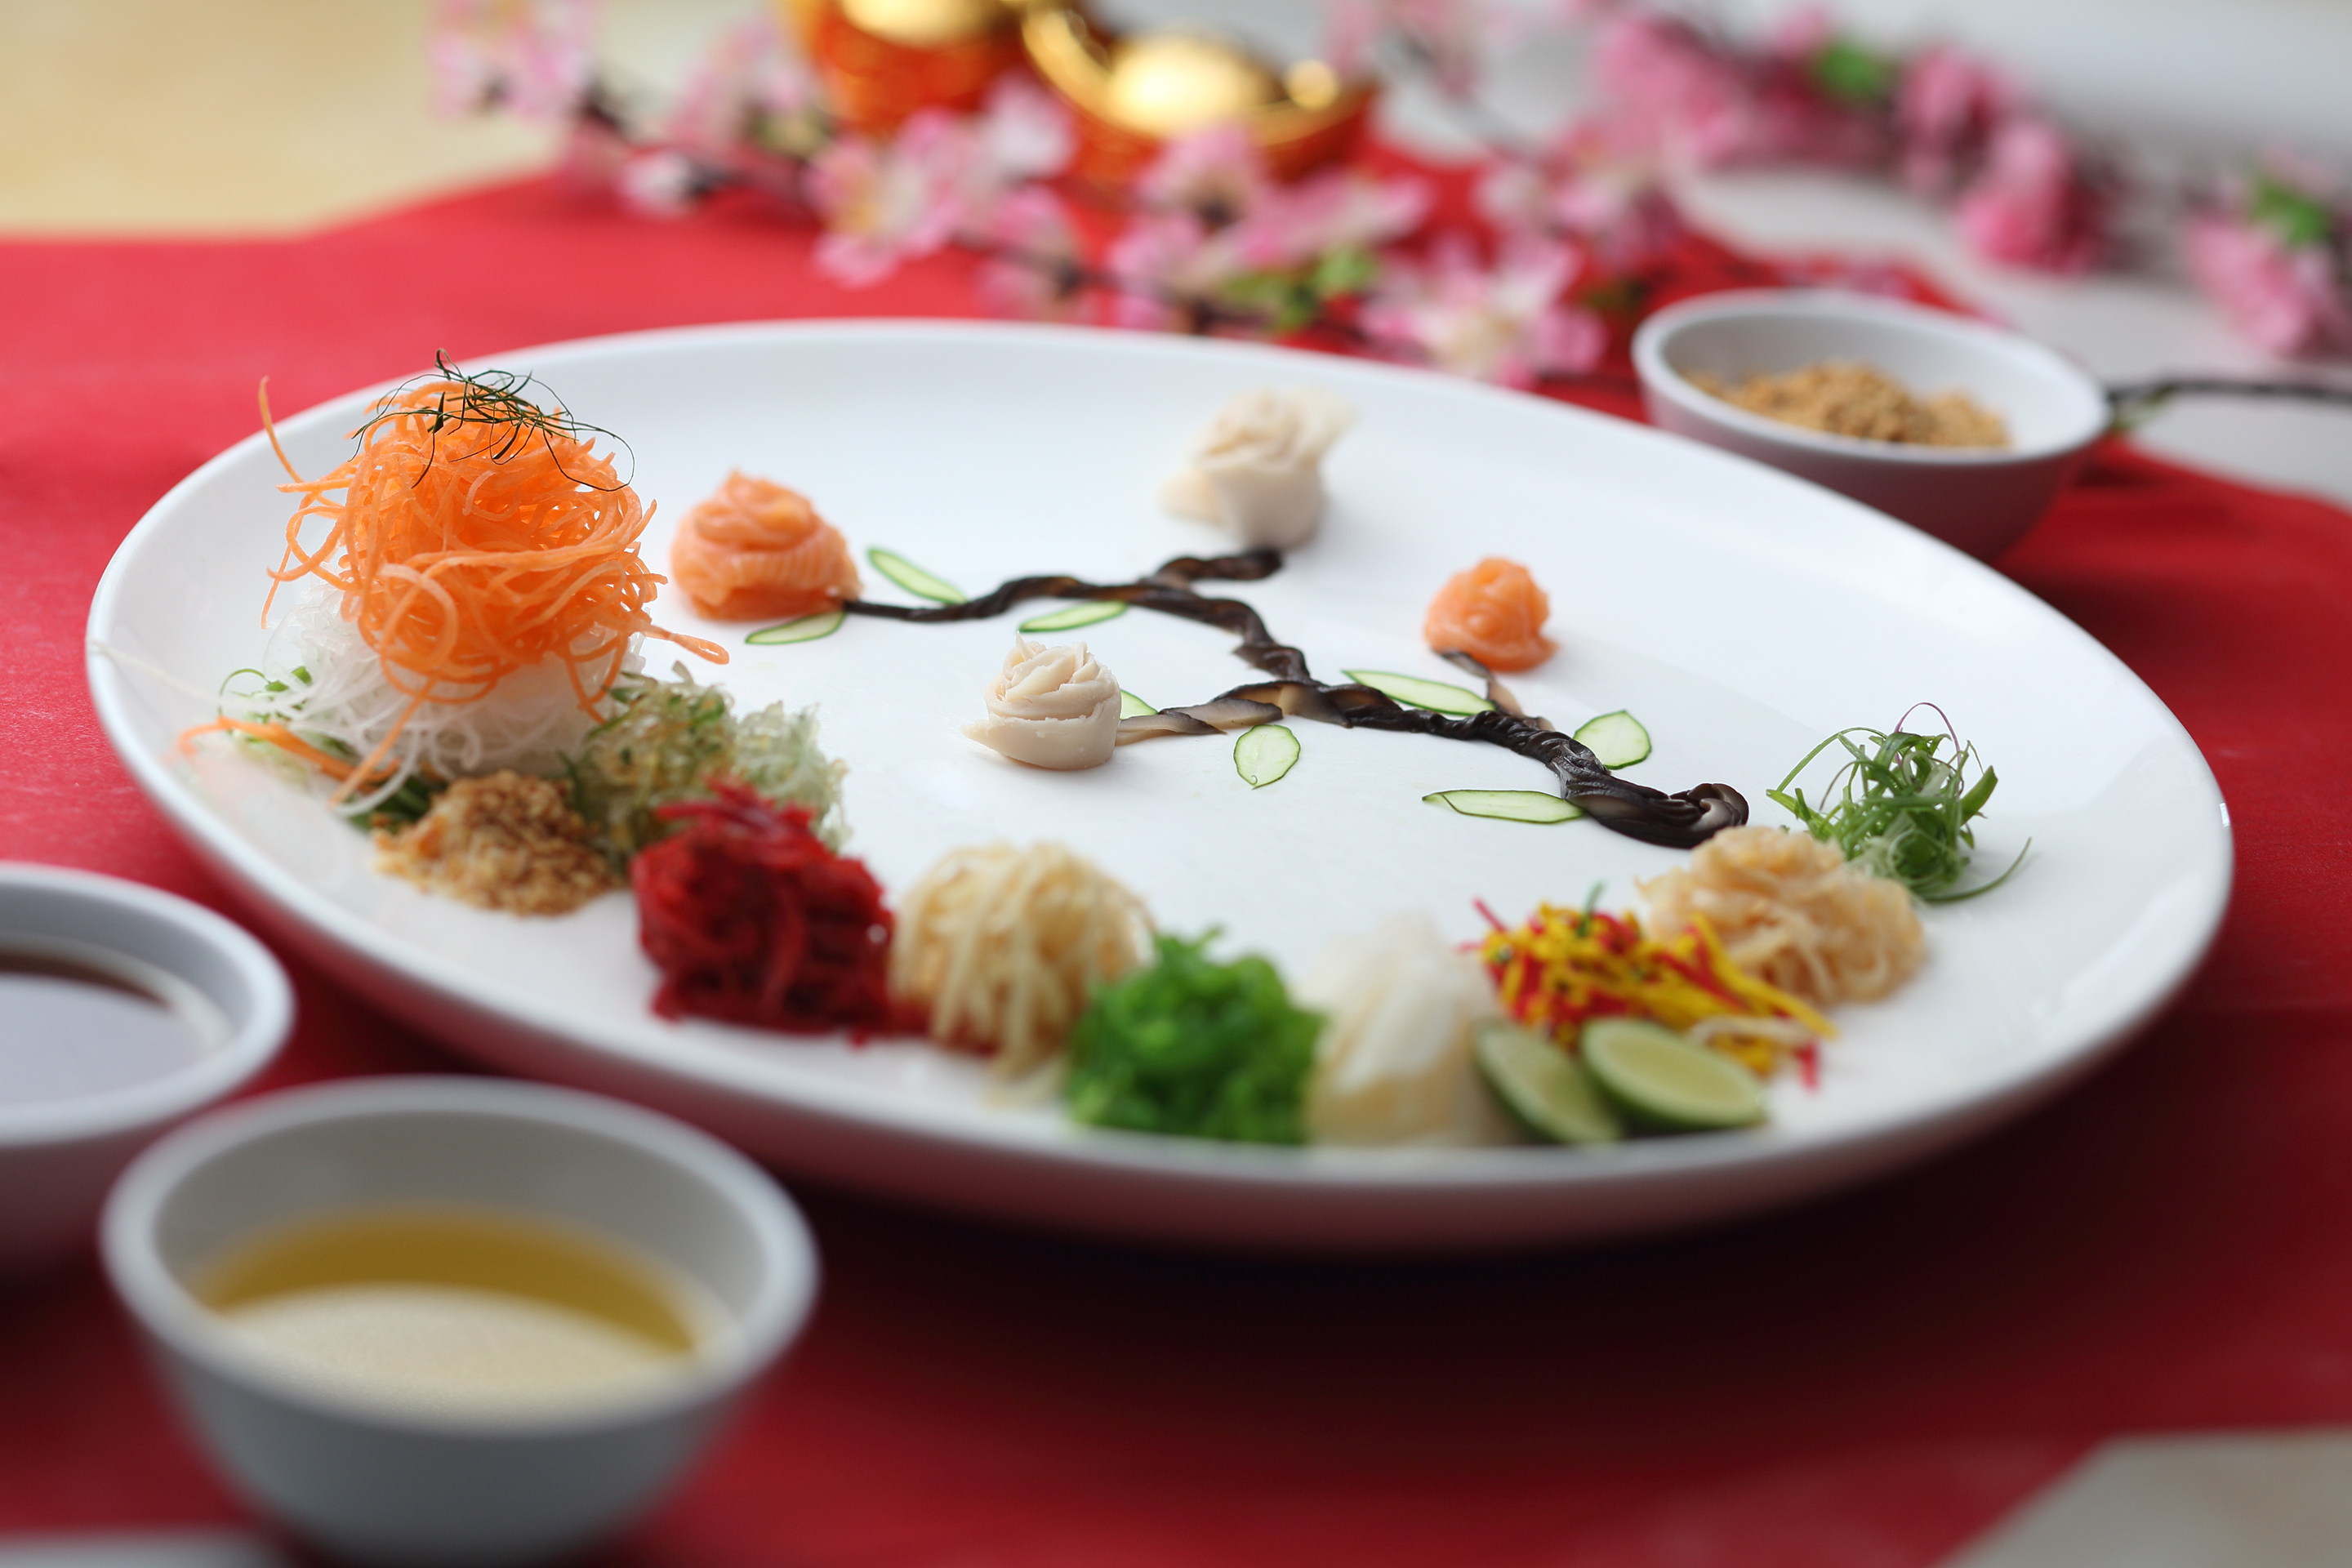 A TRADITIONAL CHINESE NEW YEAR SHOULD BE BEST ENJOYED WITH TRULY AUTHENTIC EXPERIENCES